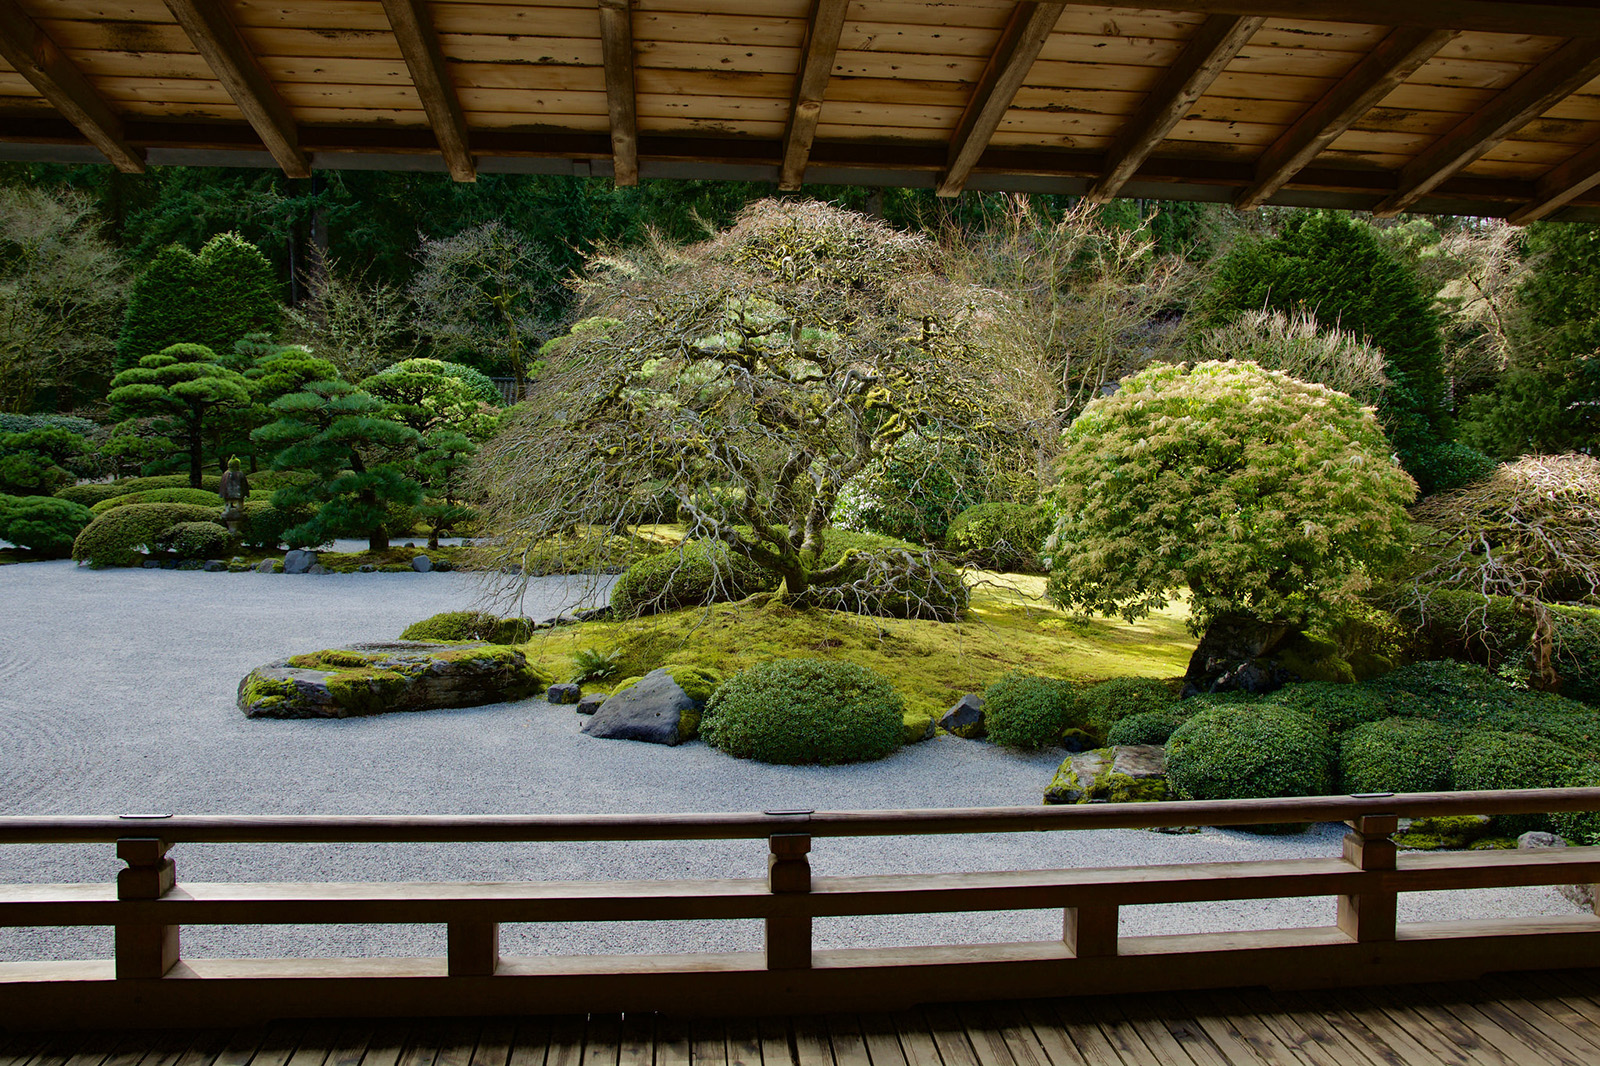 A viewscape in Portland Japanese Garden